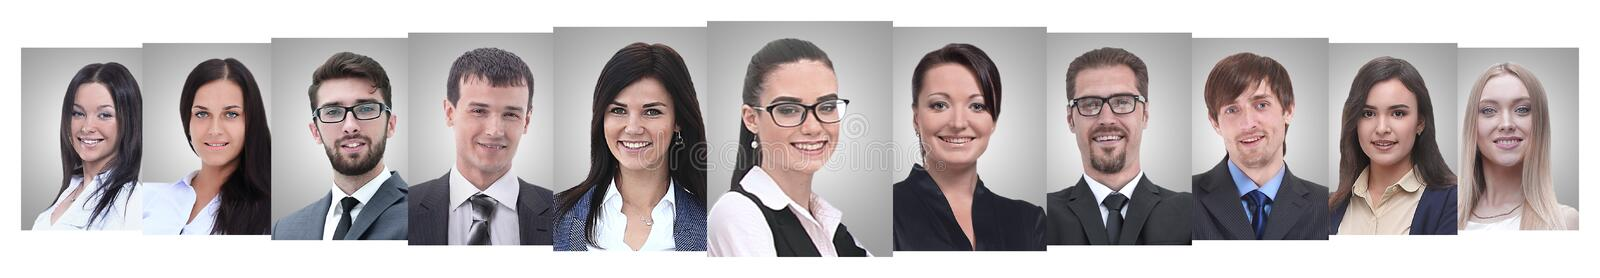 Panoramic collage of portraits of successful business people royalty free stock image